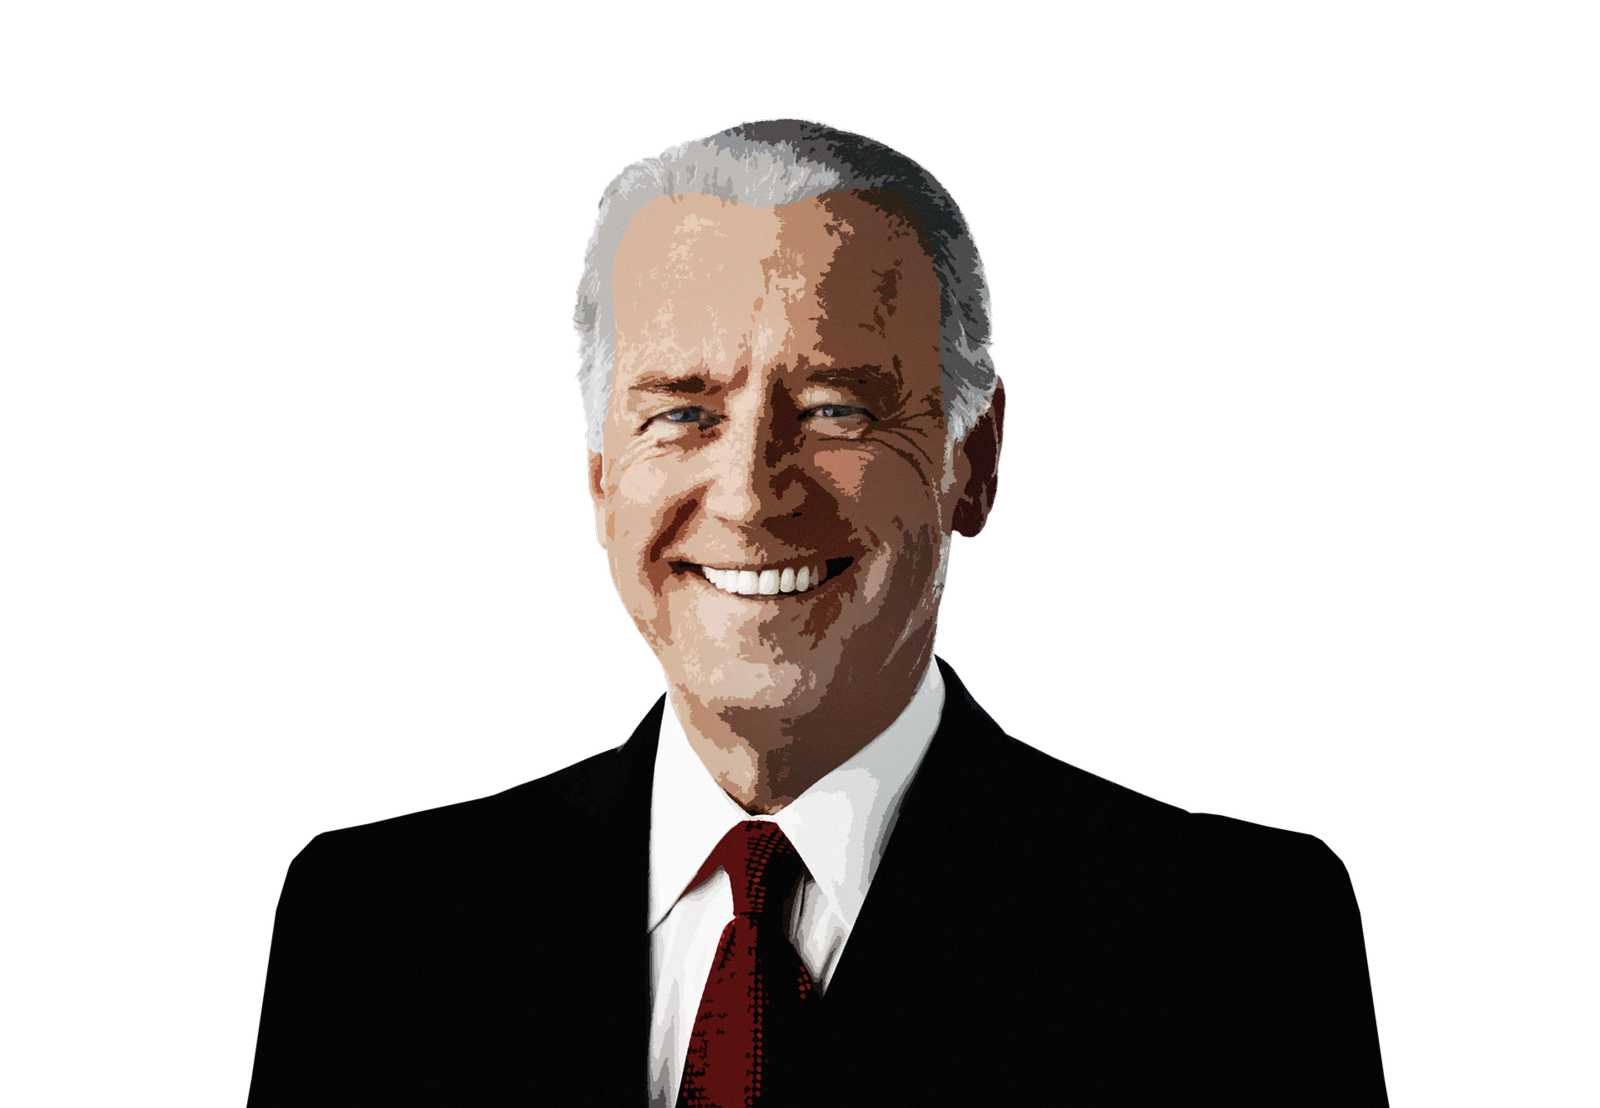 photo of president-elect Joe Biden